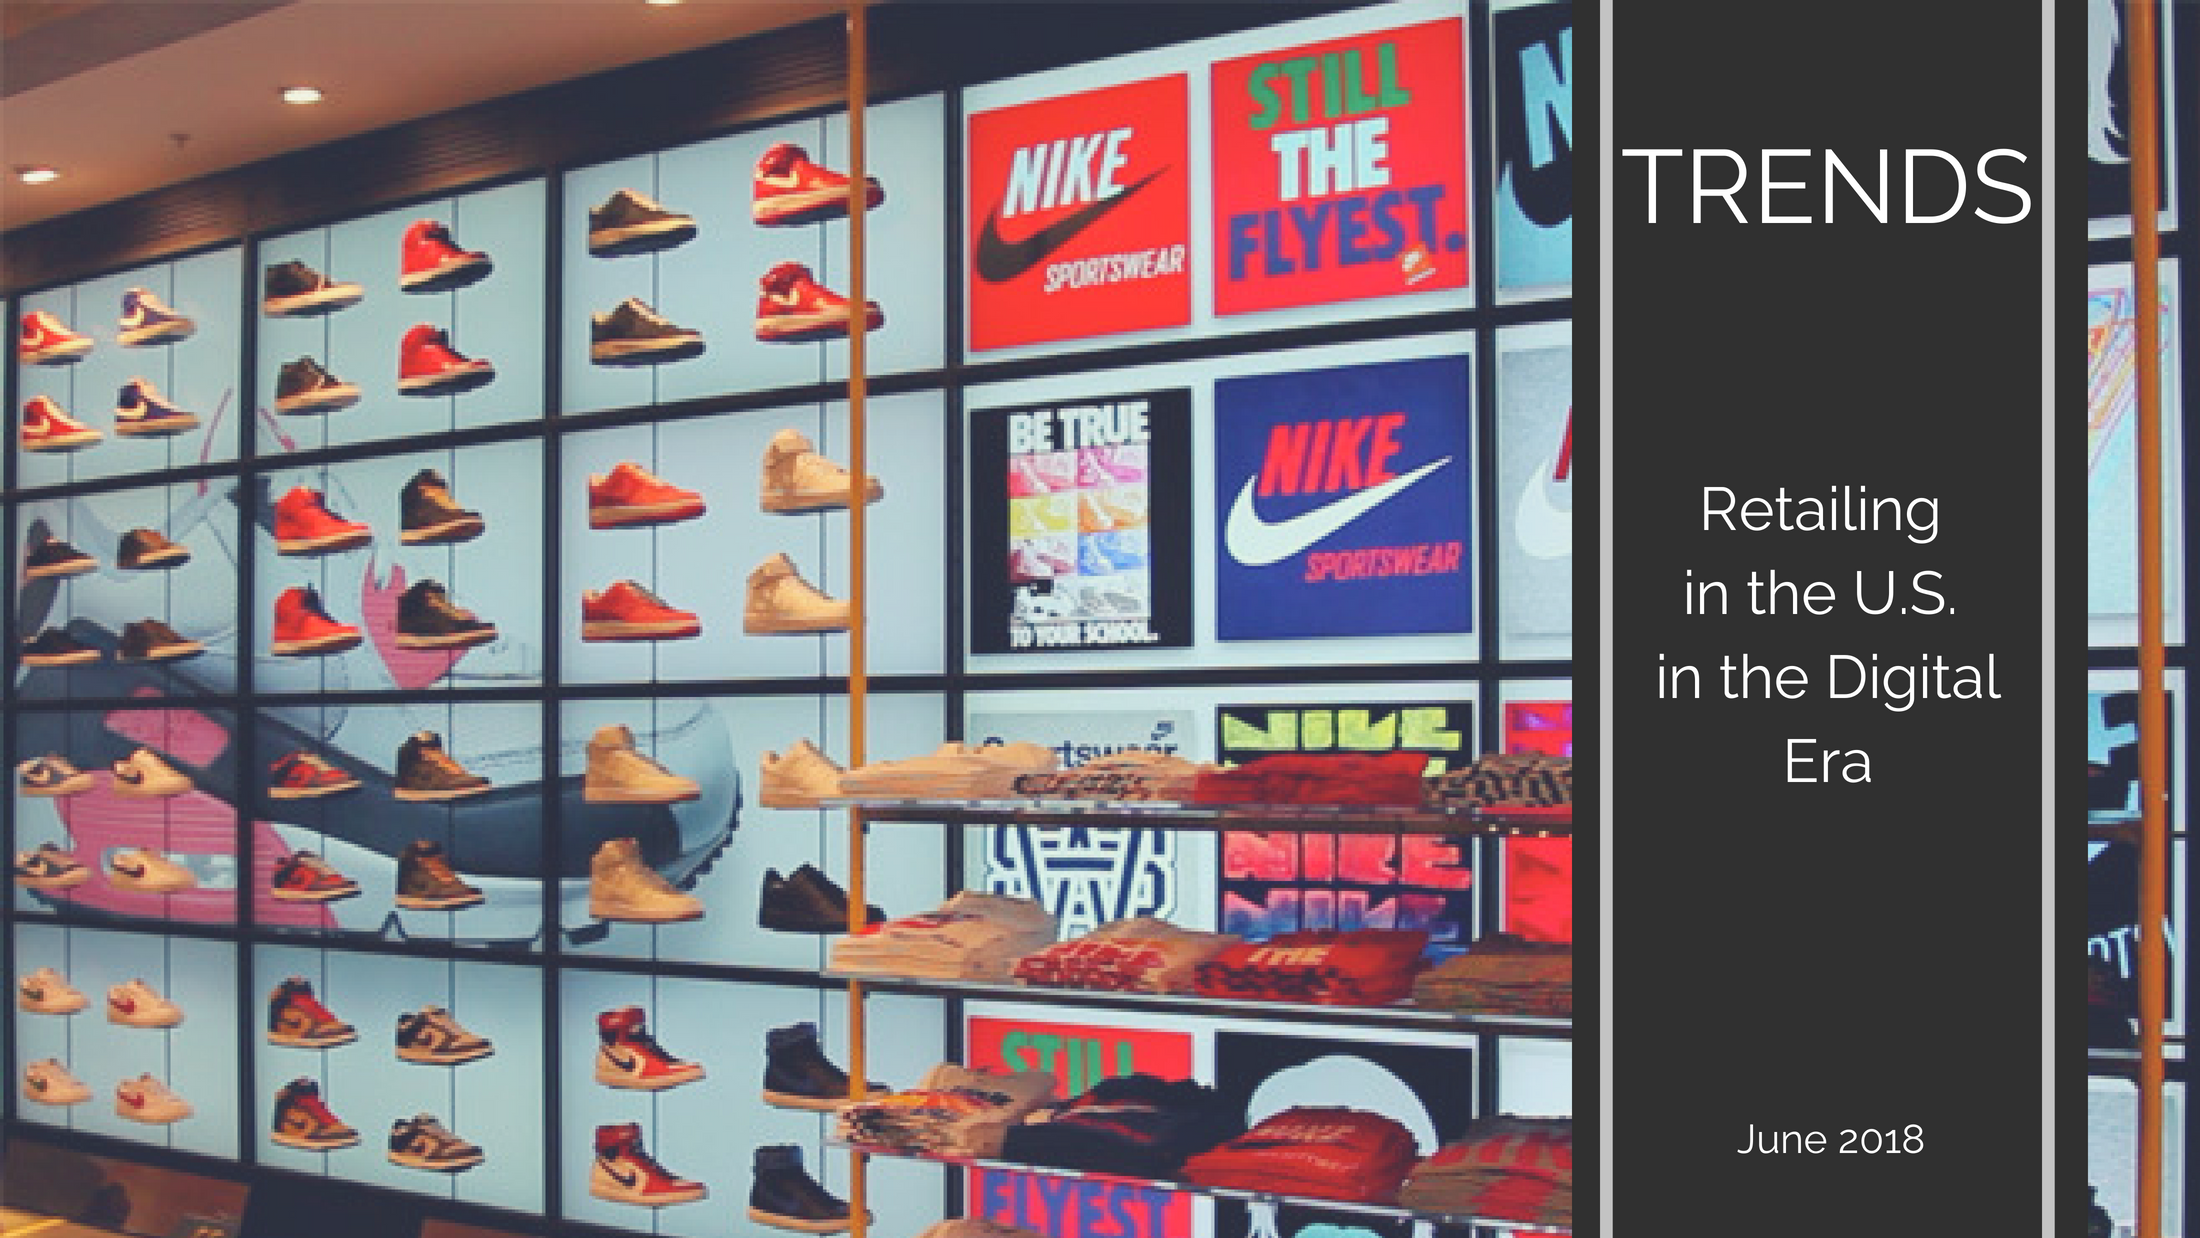 digital retail nike warby parker usa consulting startups